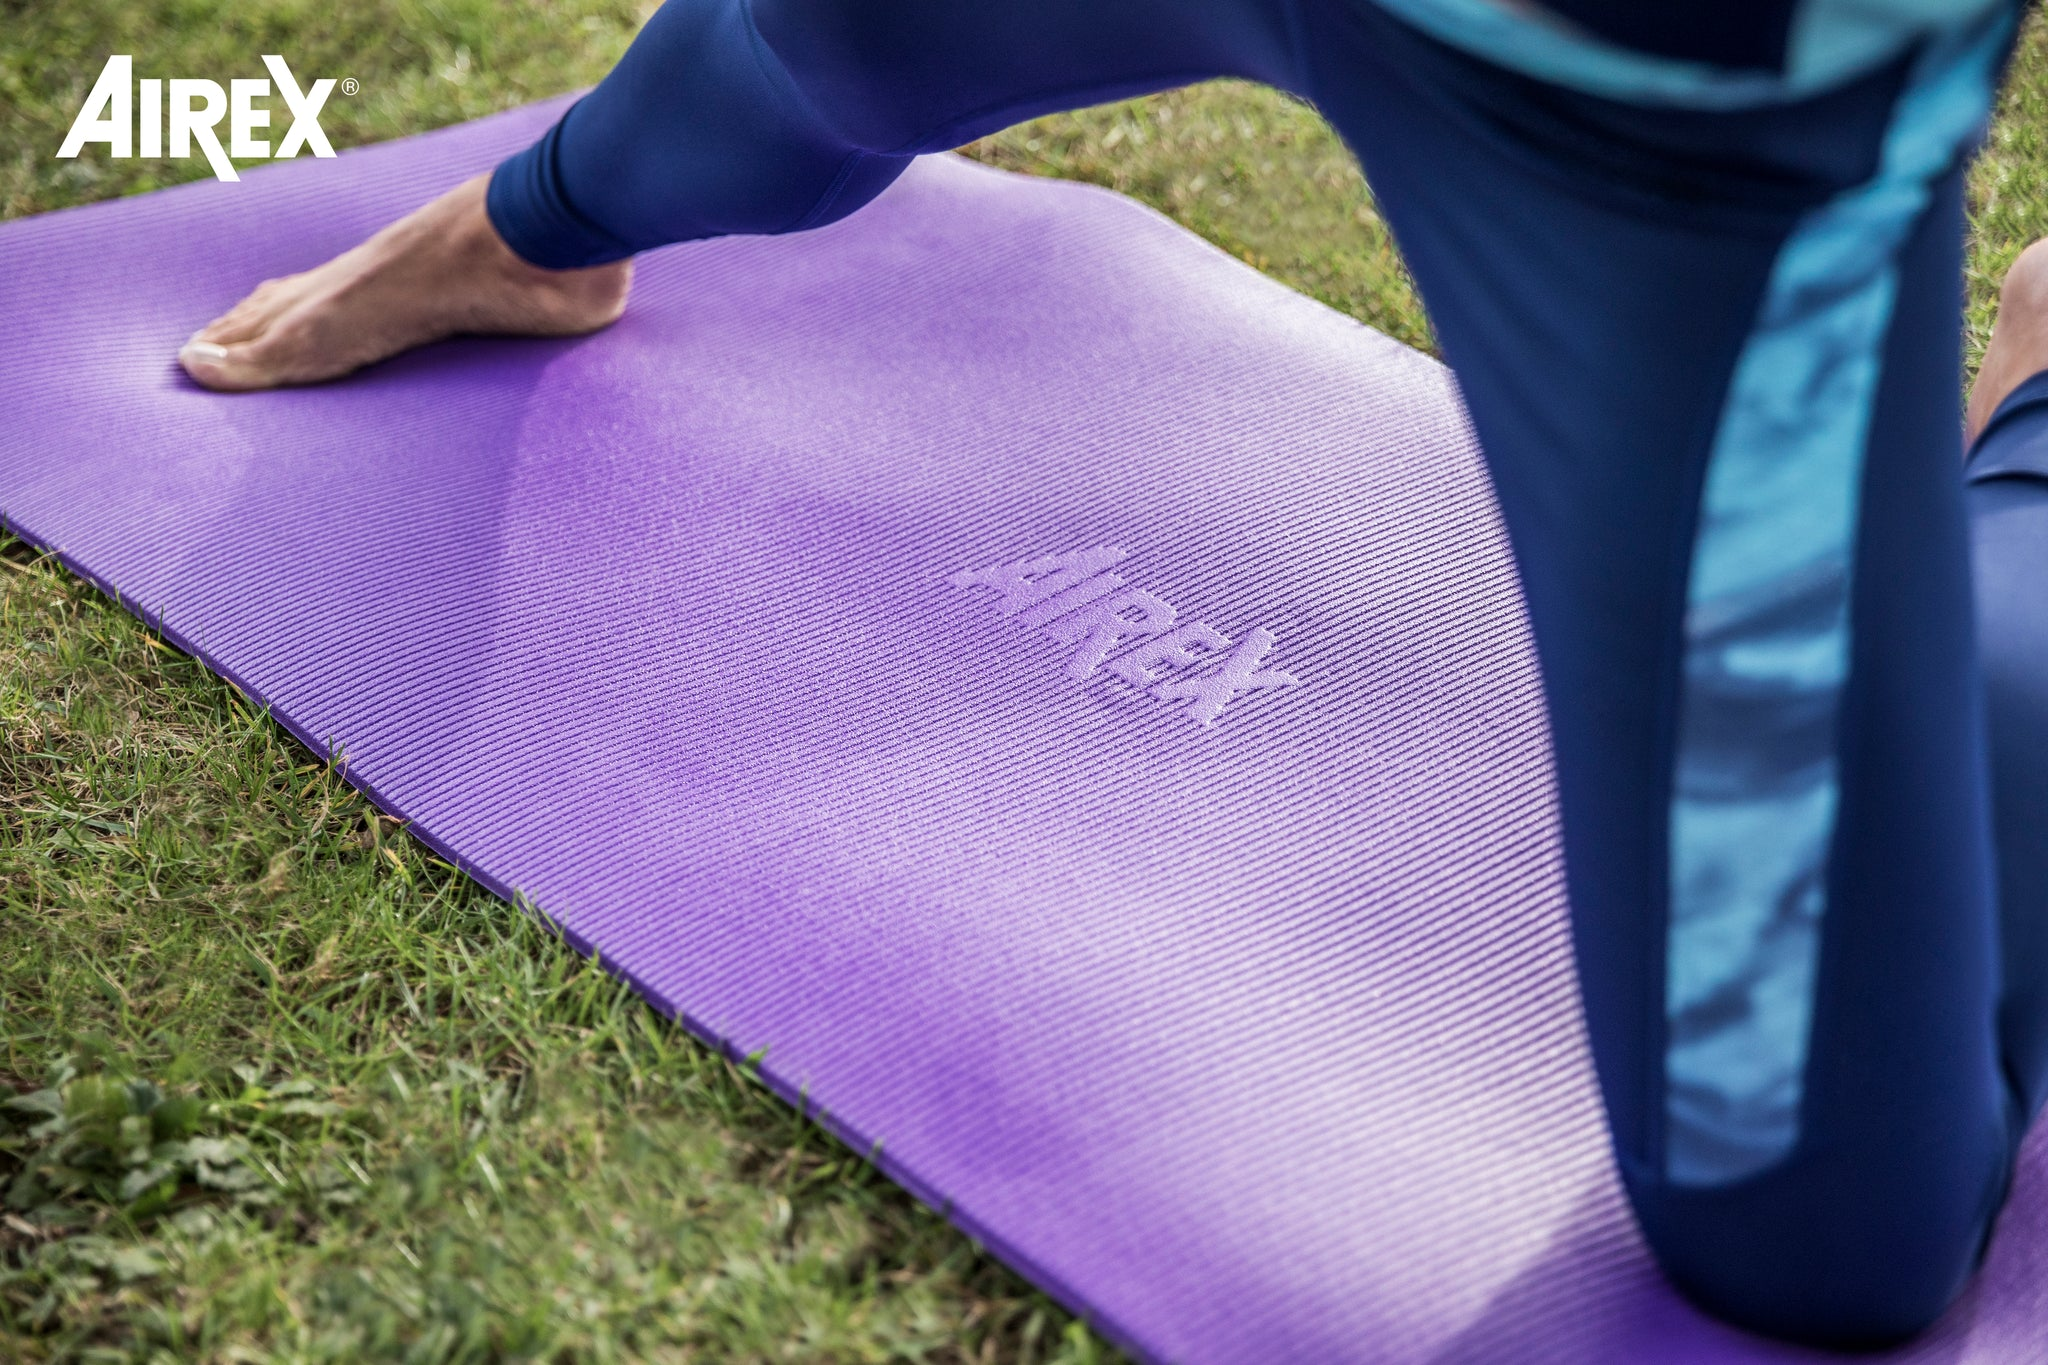 Airex Exercise Mat Yogapilates 190 Airex Us